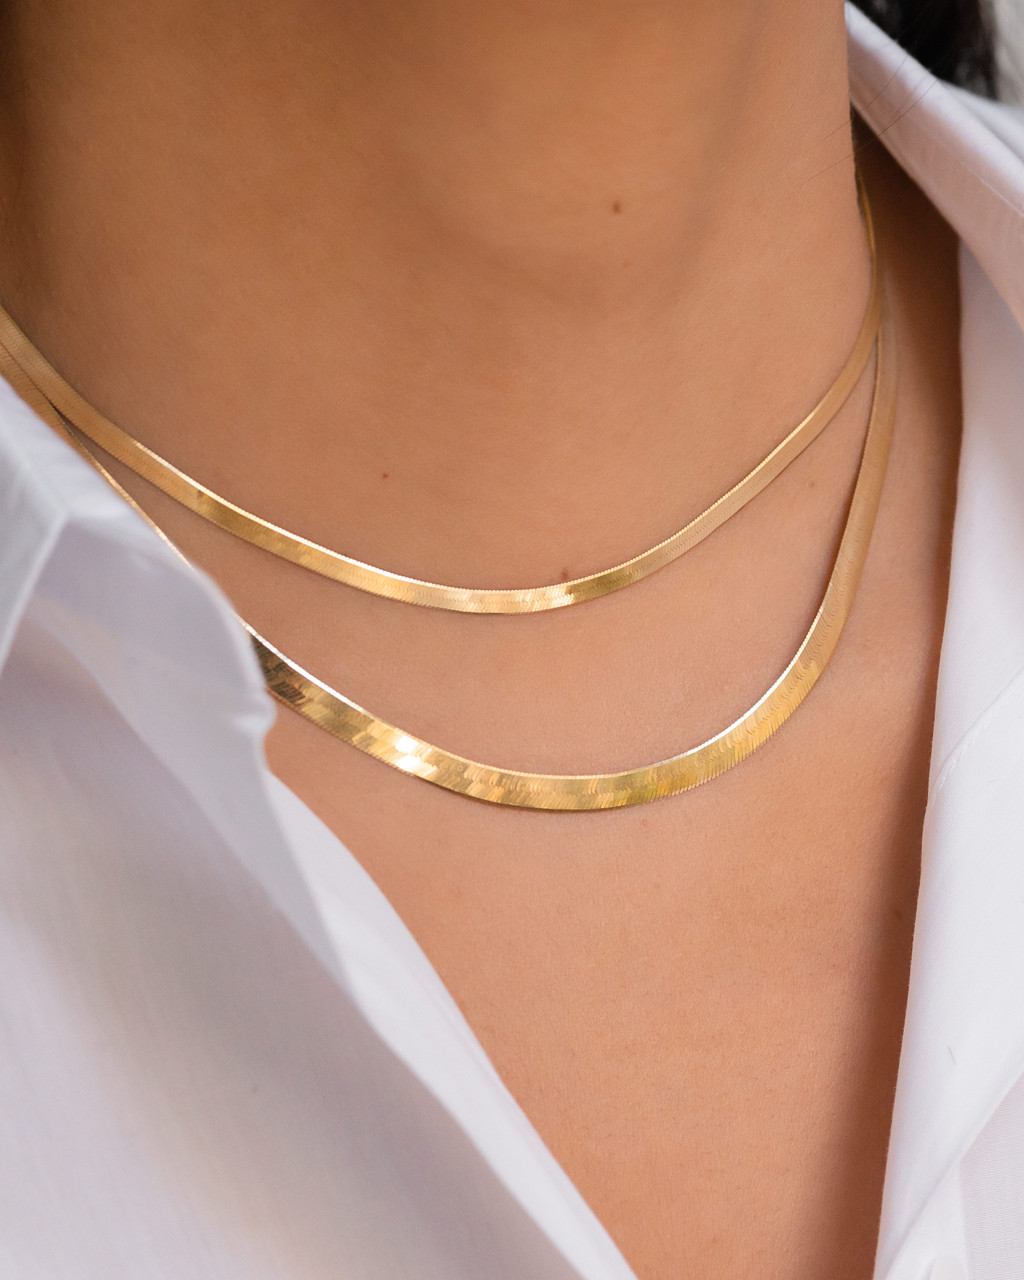 14k Gold Large Herringbone Necklace- Out of Stock